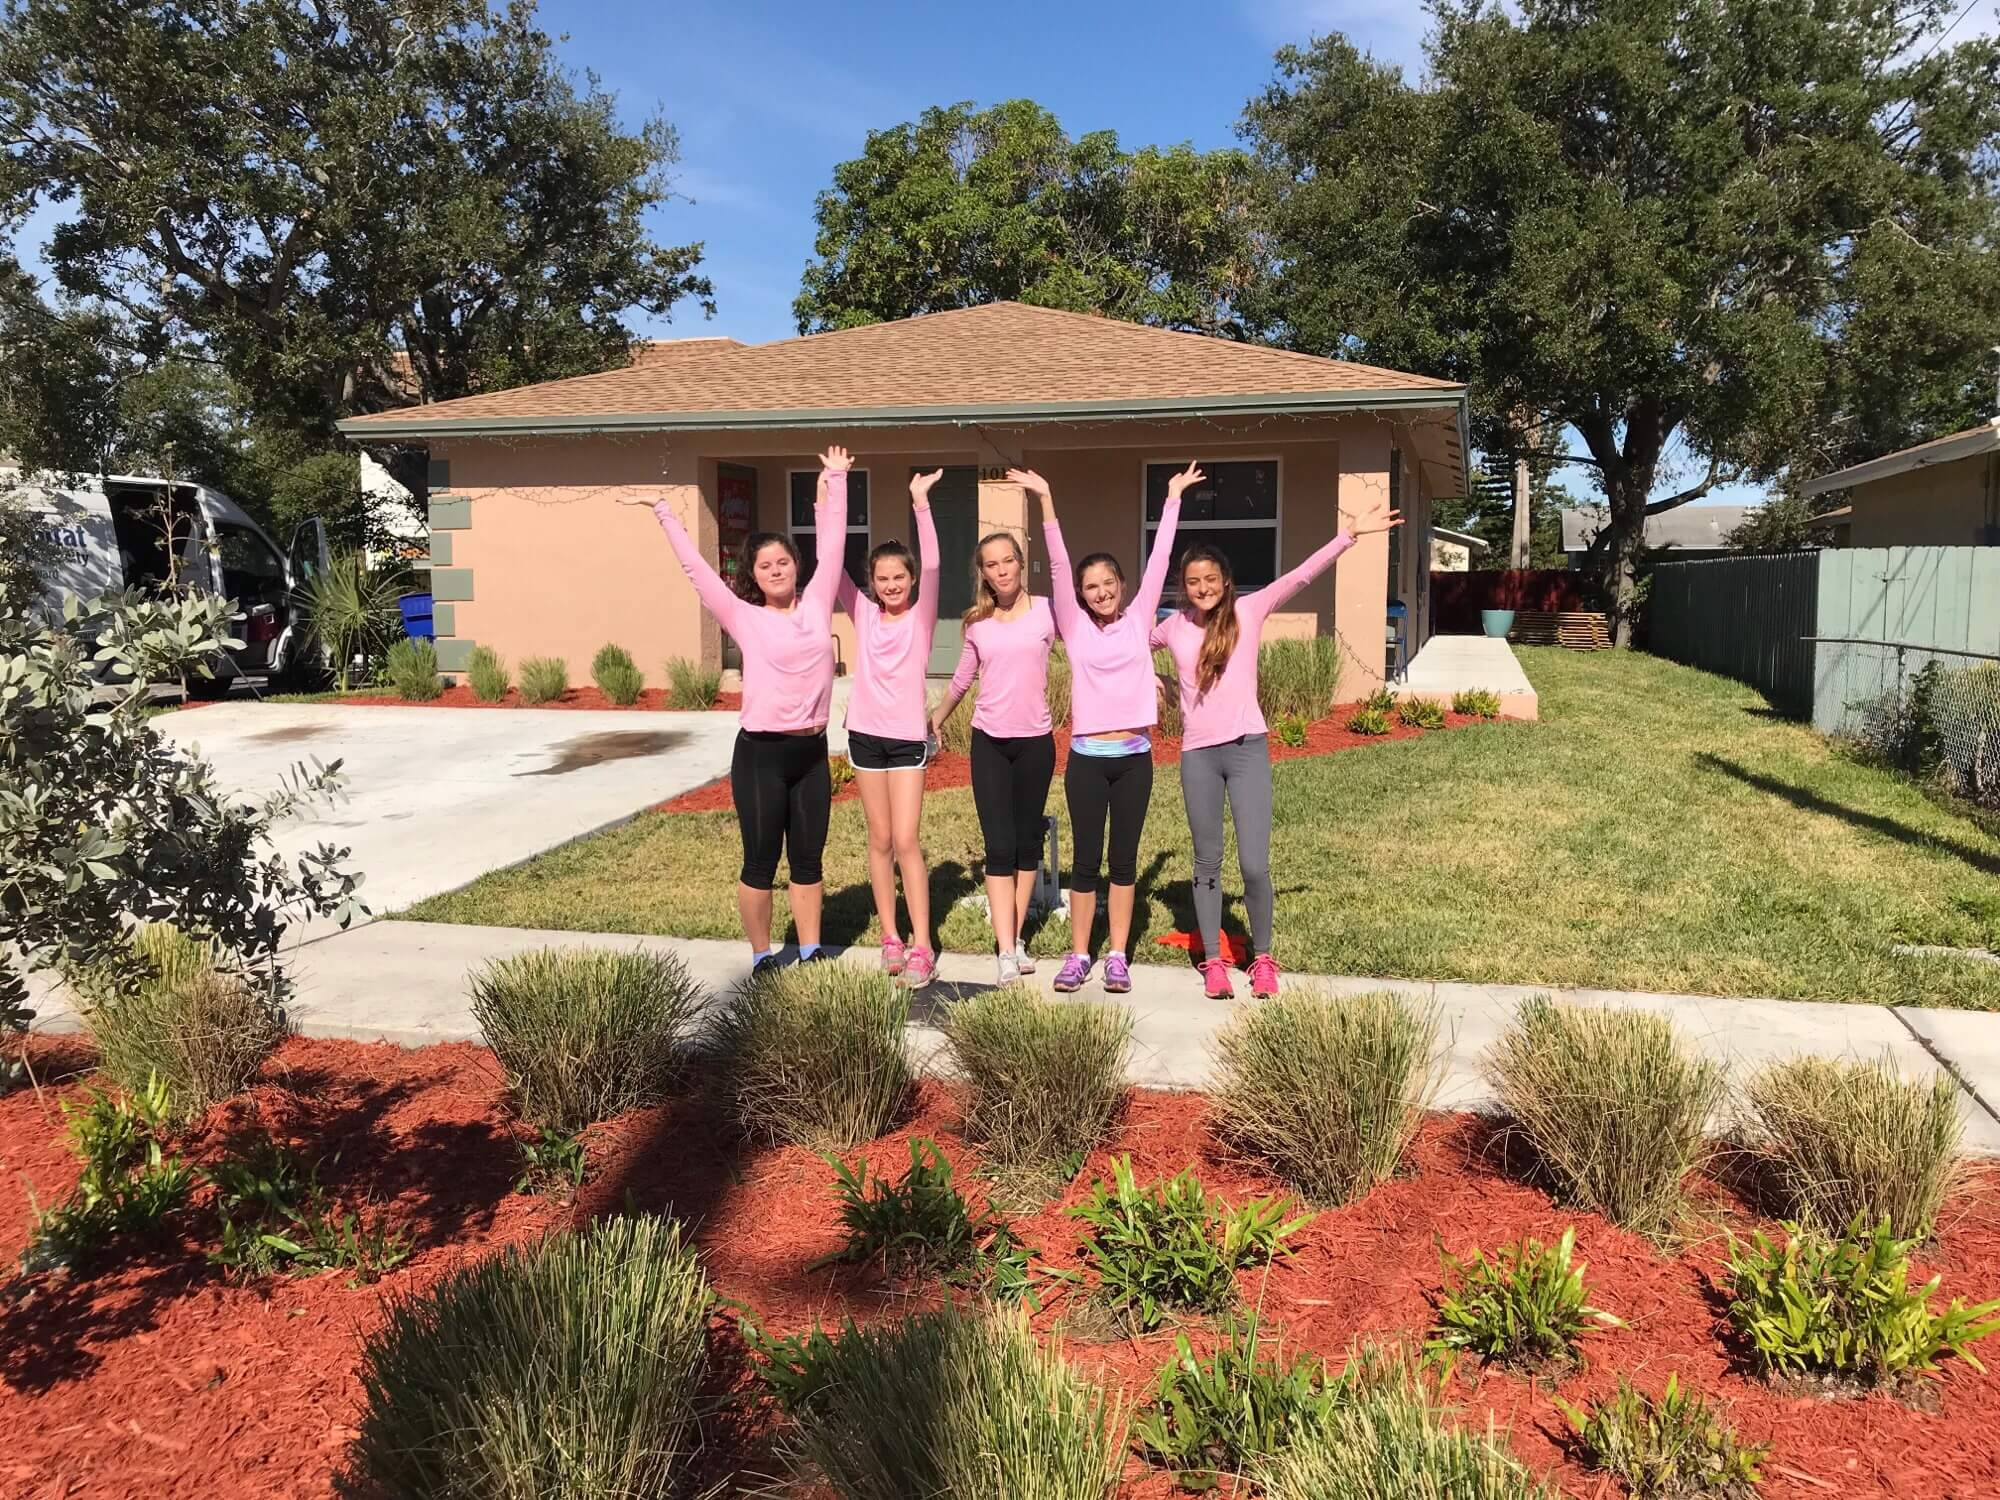 Image: 5 members of Florida Girls Giving Back